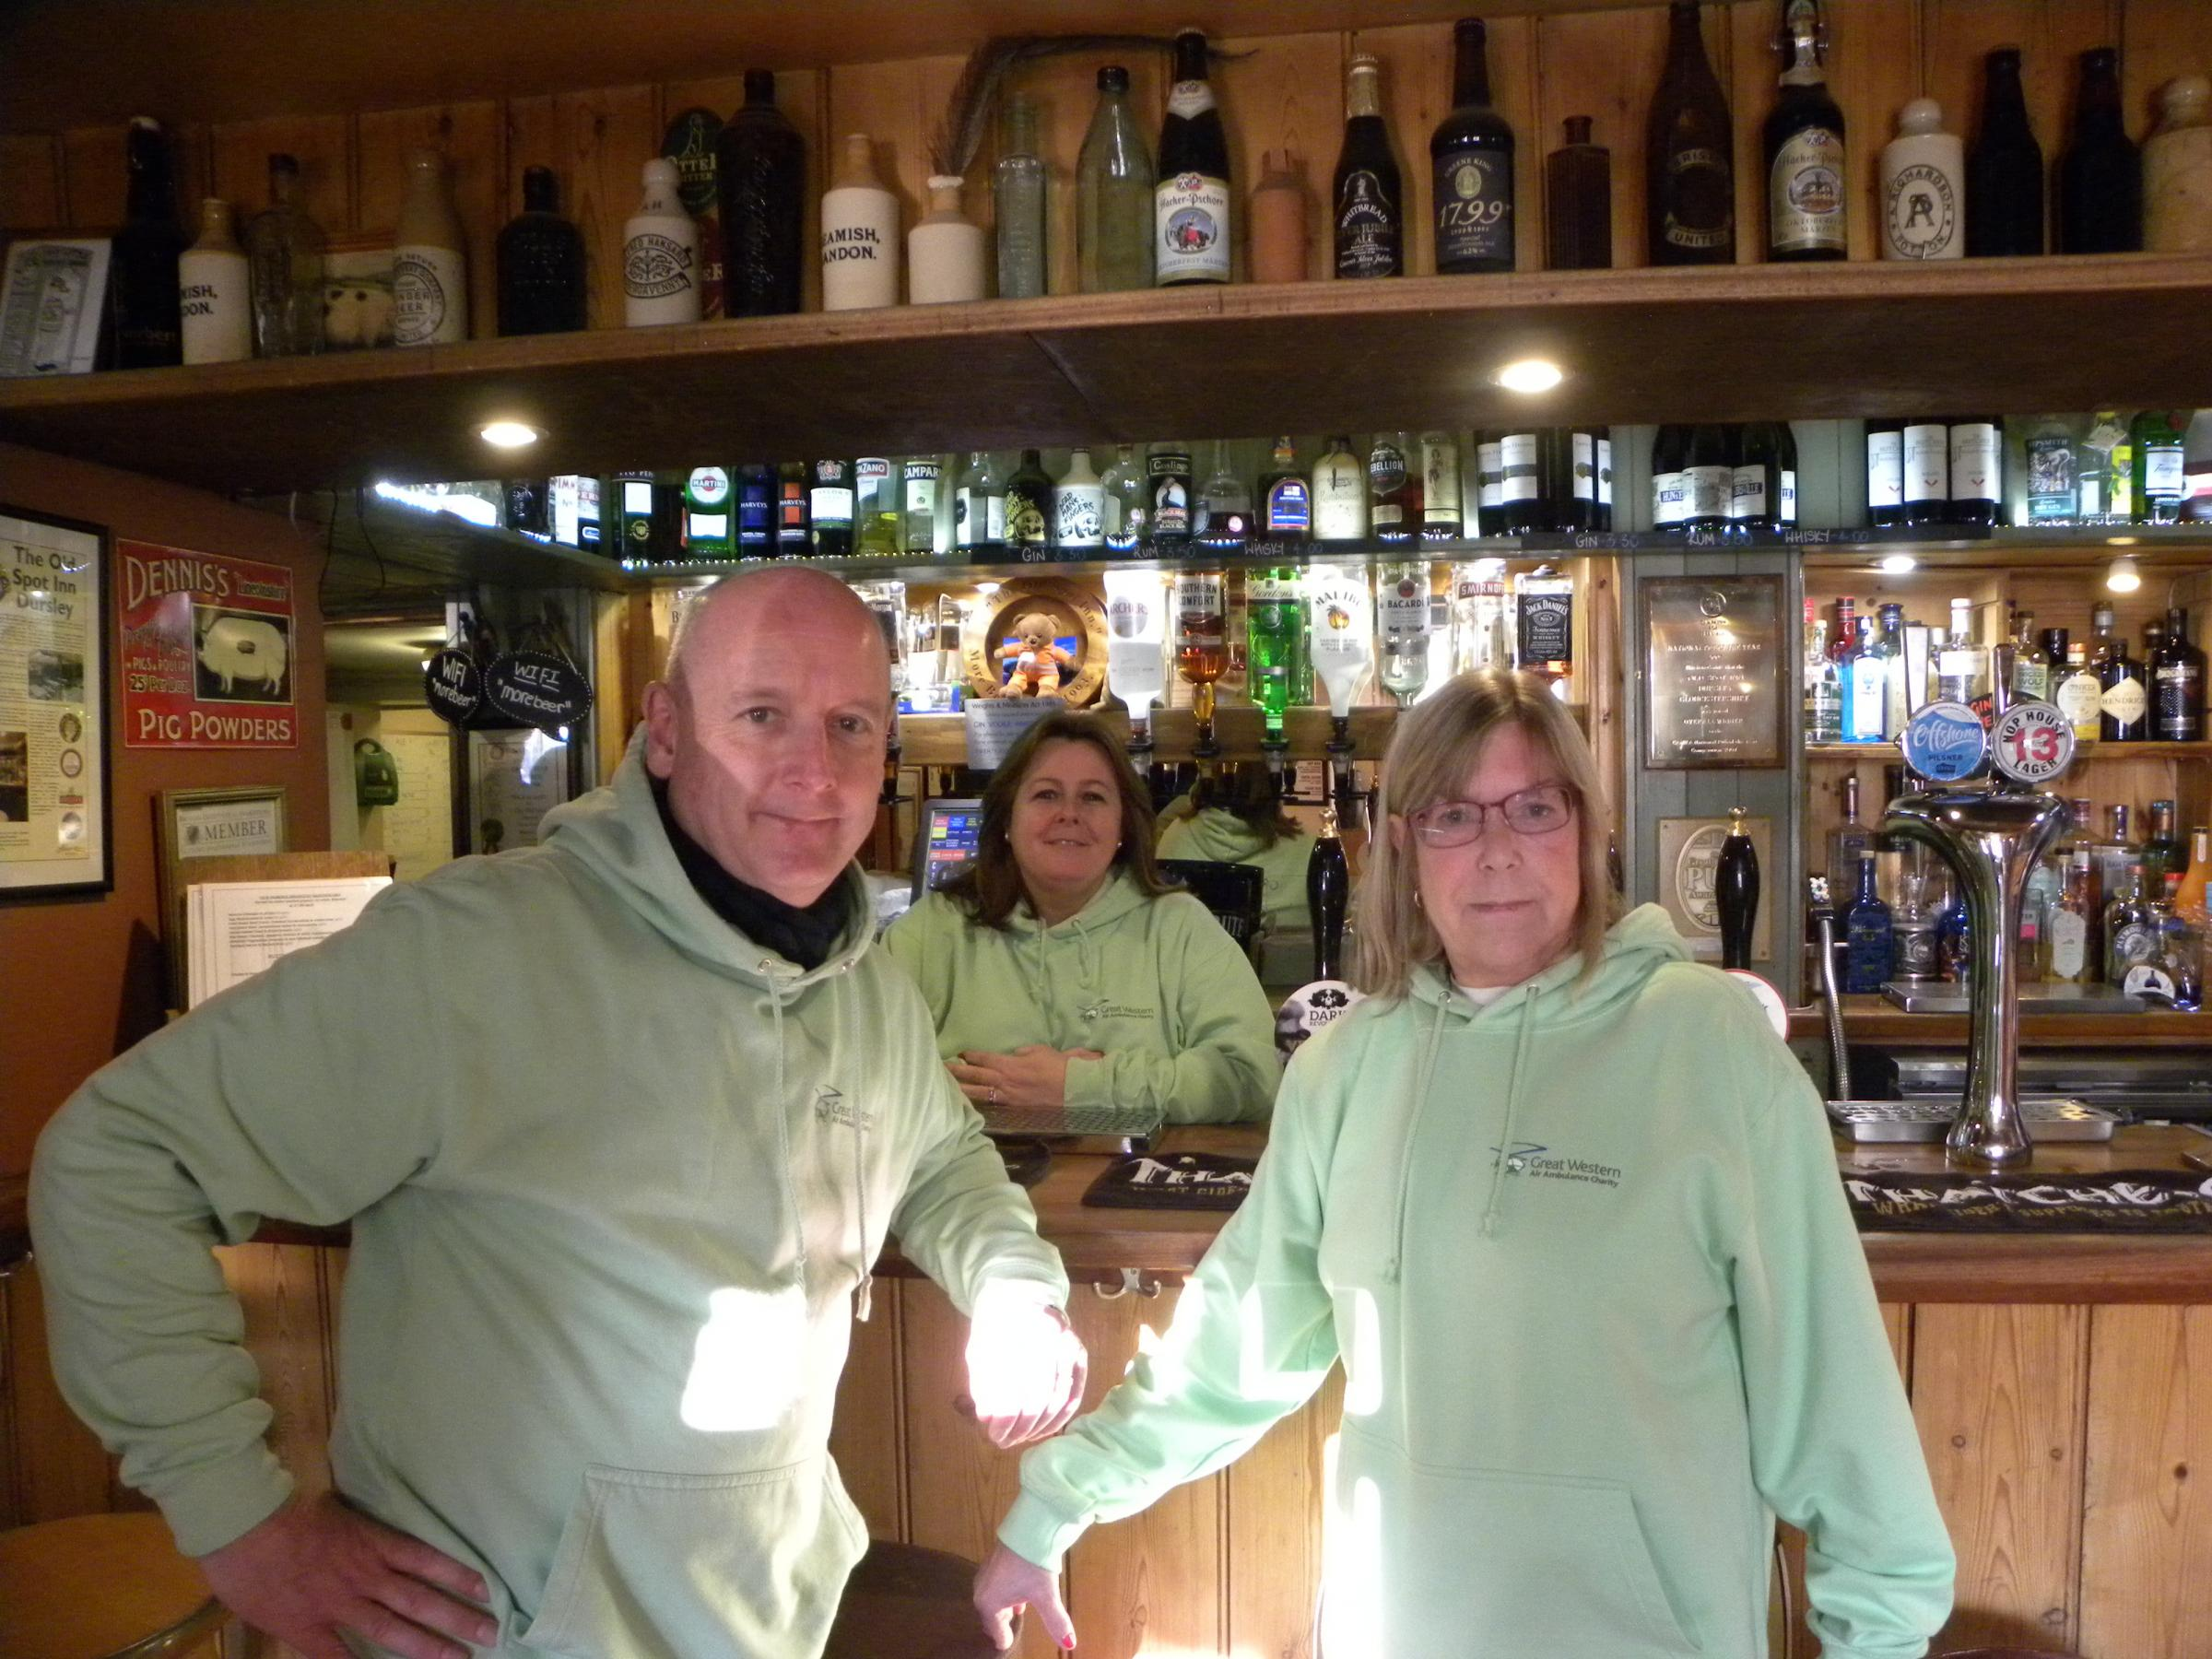 Fundraisers at the Old Spot. Left to right: Andy Markham, Jo Lewis, who manages the Old Spot, and Judith Rubin, who raised £600 for GWAAC by knitting a scarf and running a 'guess the length of the scarf' competition.